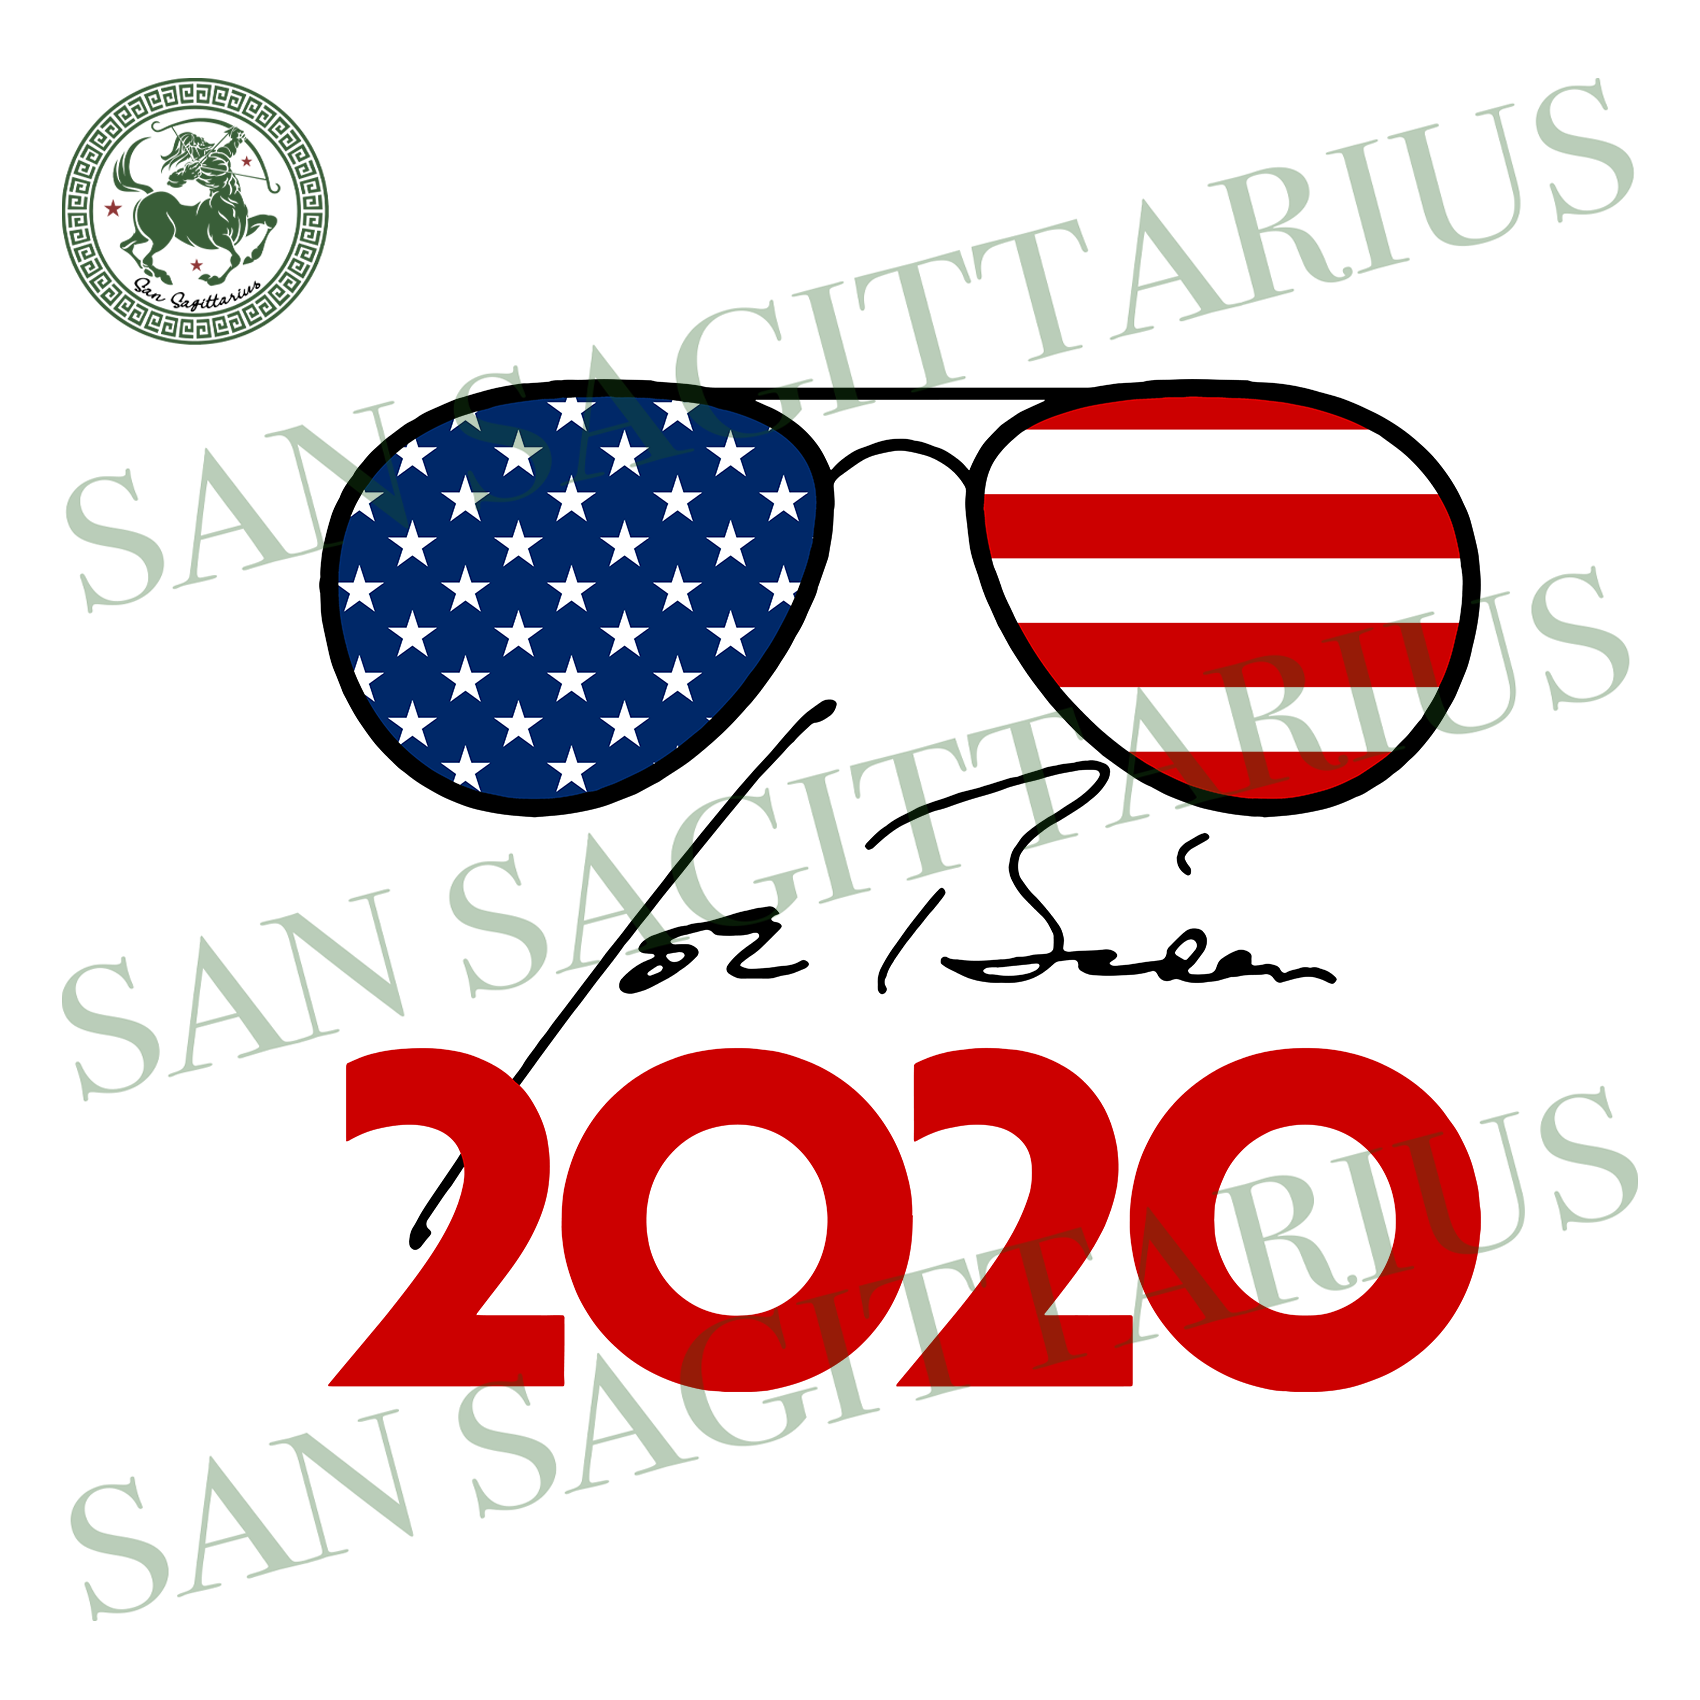 Biden glasses 2020 svg,svg,biden 2020 svg,harris 2020 svg,political shirt svg,anti trump 2020 svg,biden for president svg,svg cricut, silhouette svg files, cricut svg, silhouette svg, svg des